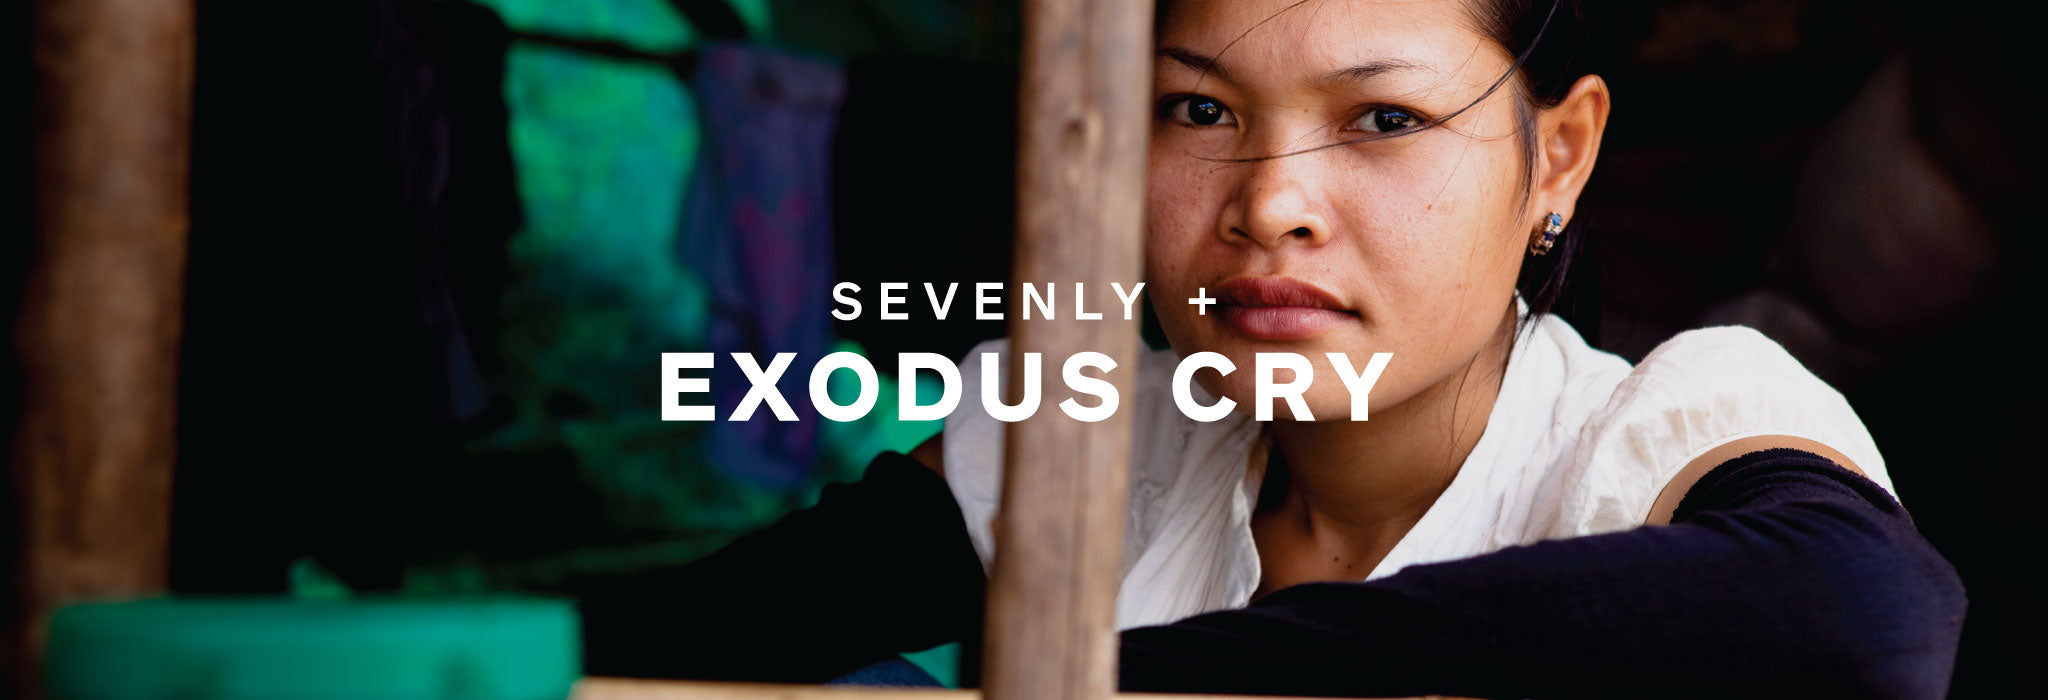 Exodus Cry – Sevenly